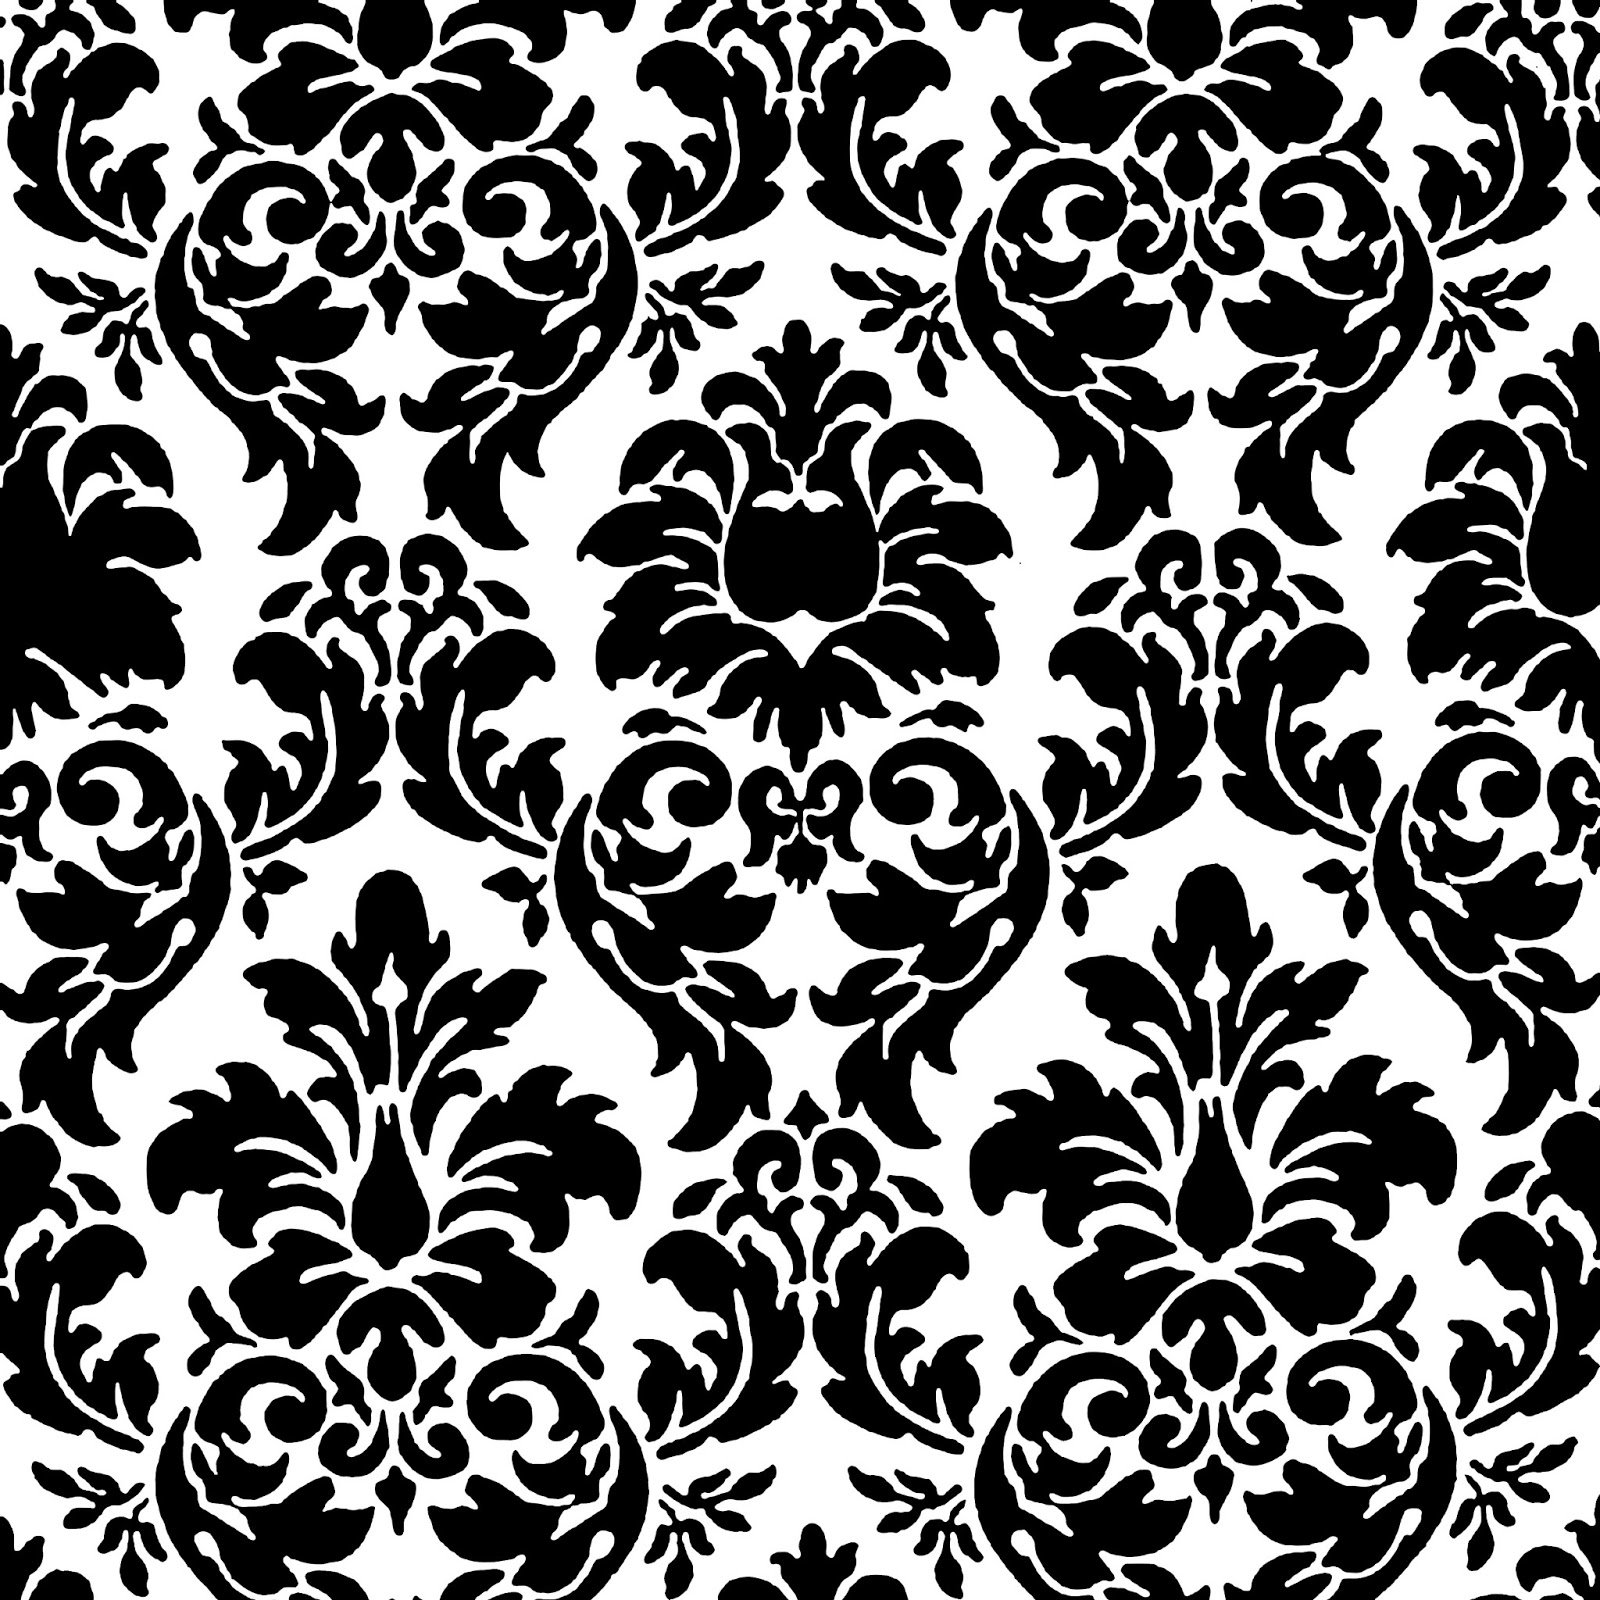 46 Damask Wallpaper Black And White On Wallpapersafari